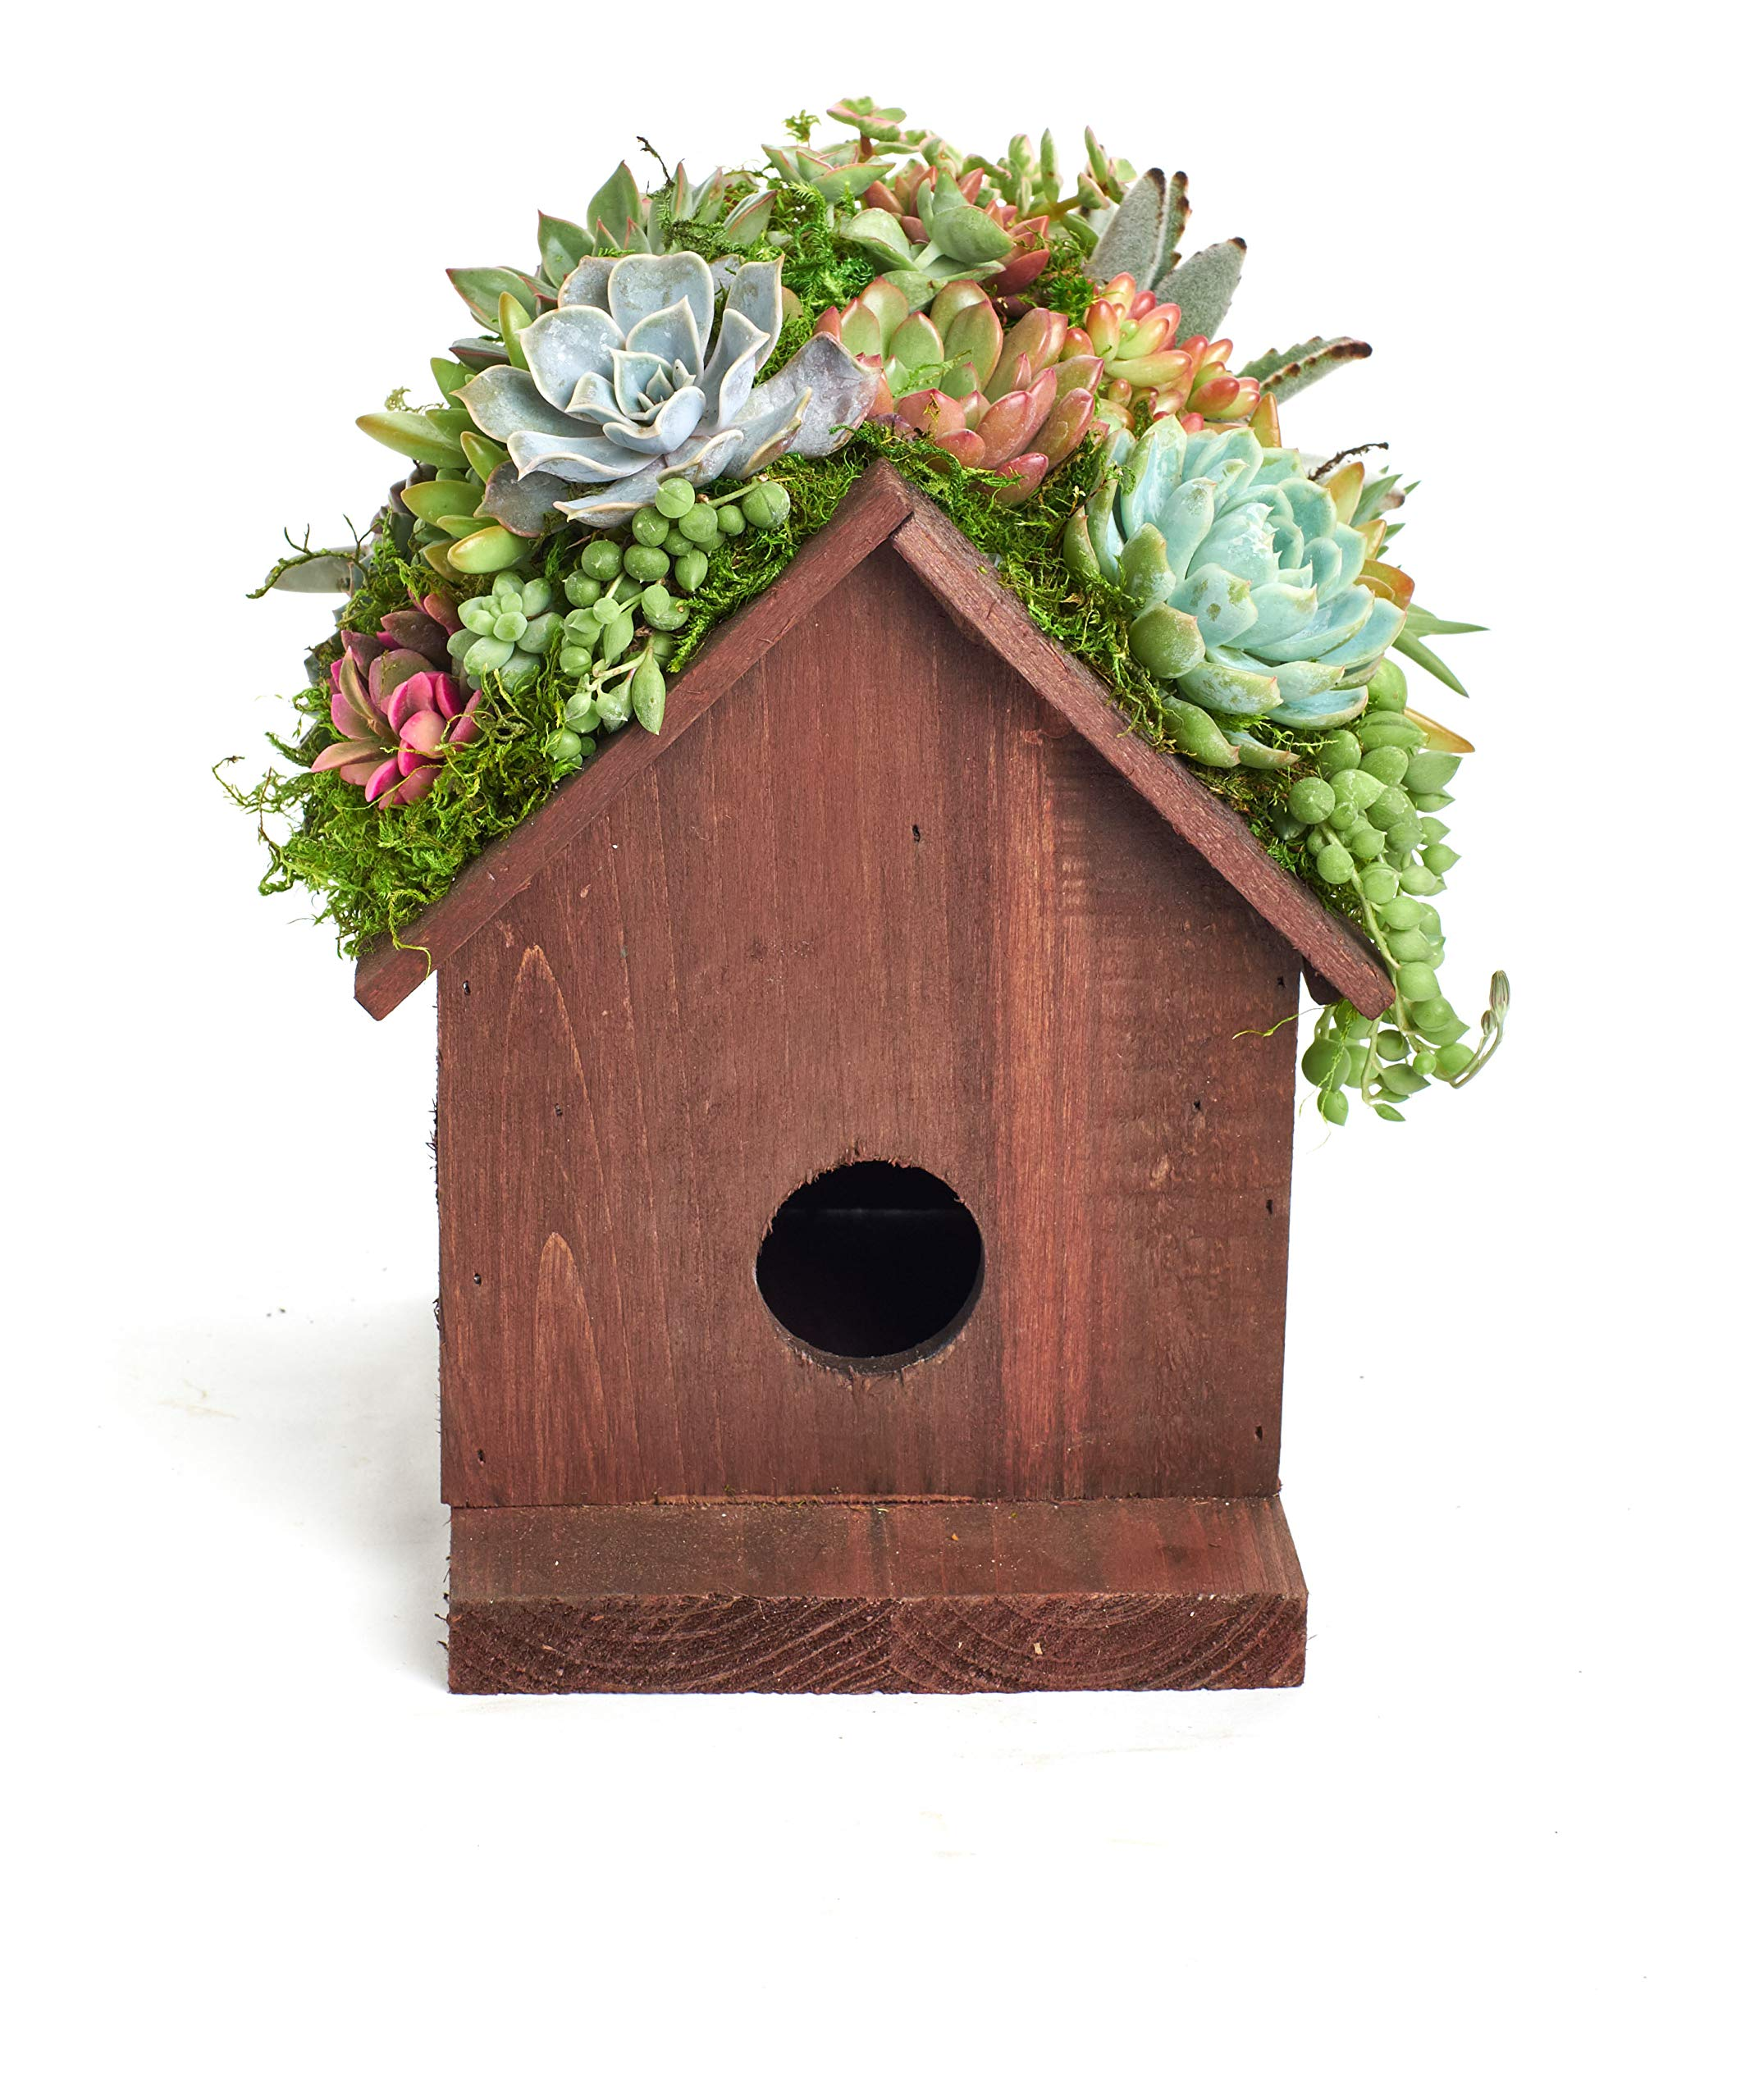 Shop Succulents BIRDHS-20-SUC-KIT Living Succulent Kit Birdhouse Planter by Shop Succulents (Image #2)